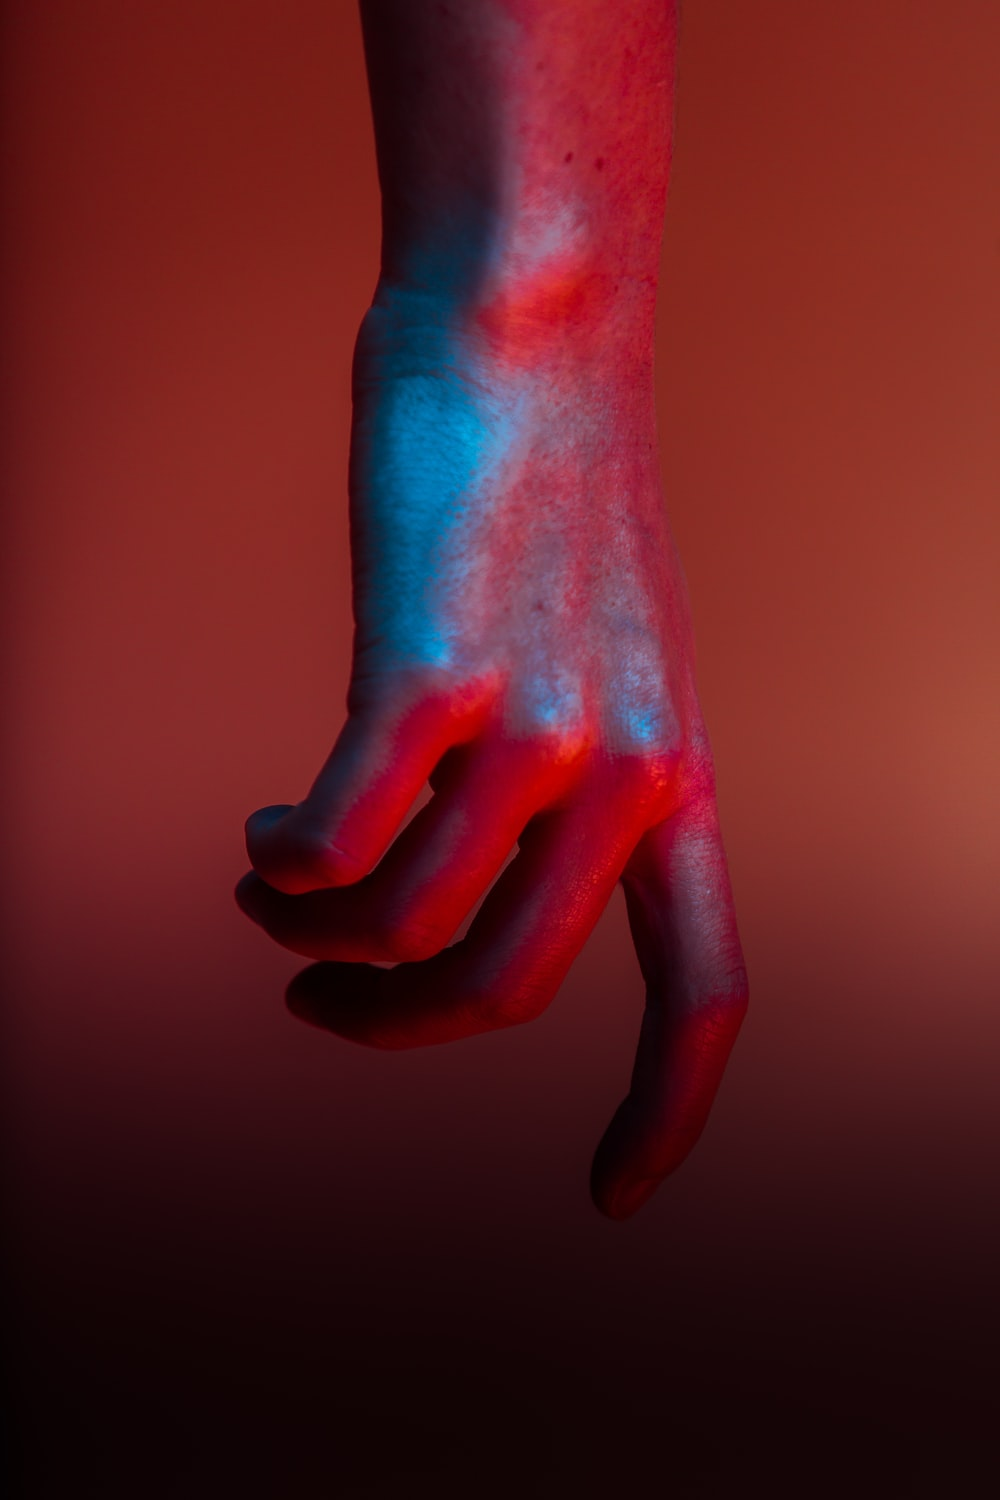 shallow focus photography of hand with red paint